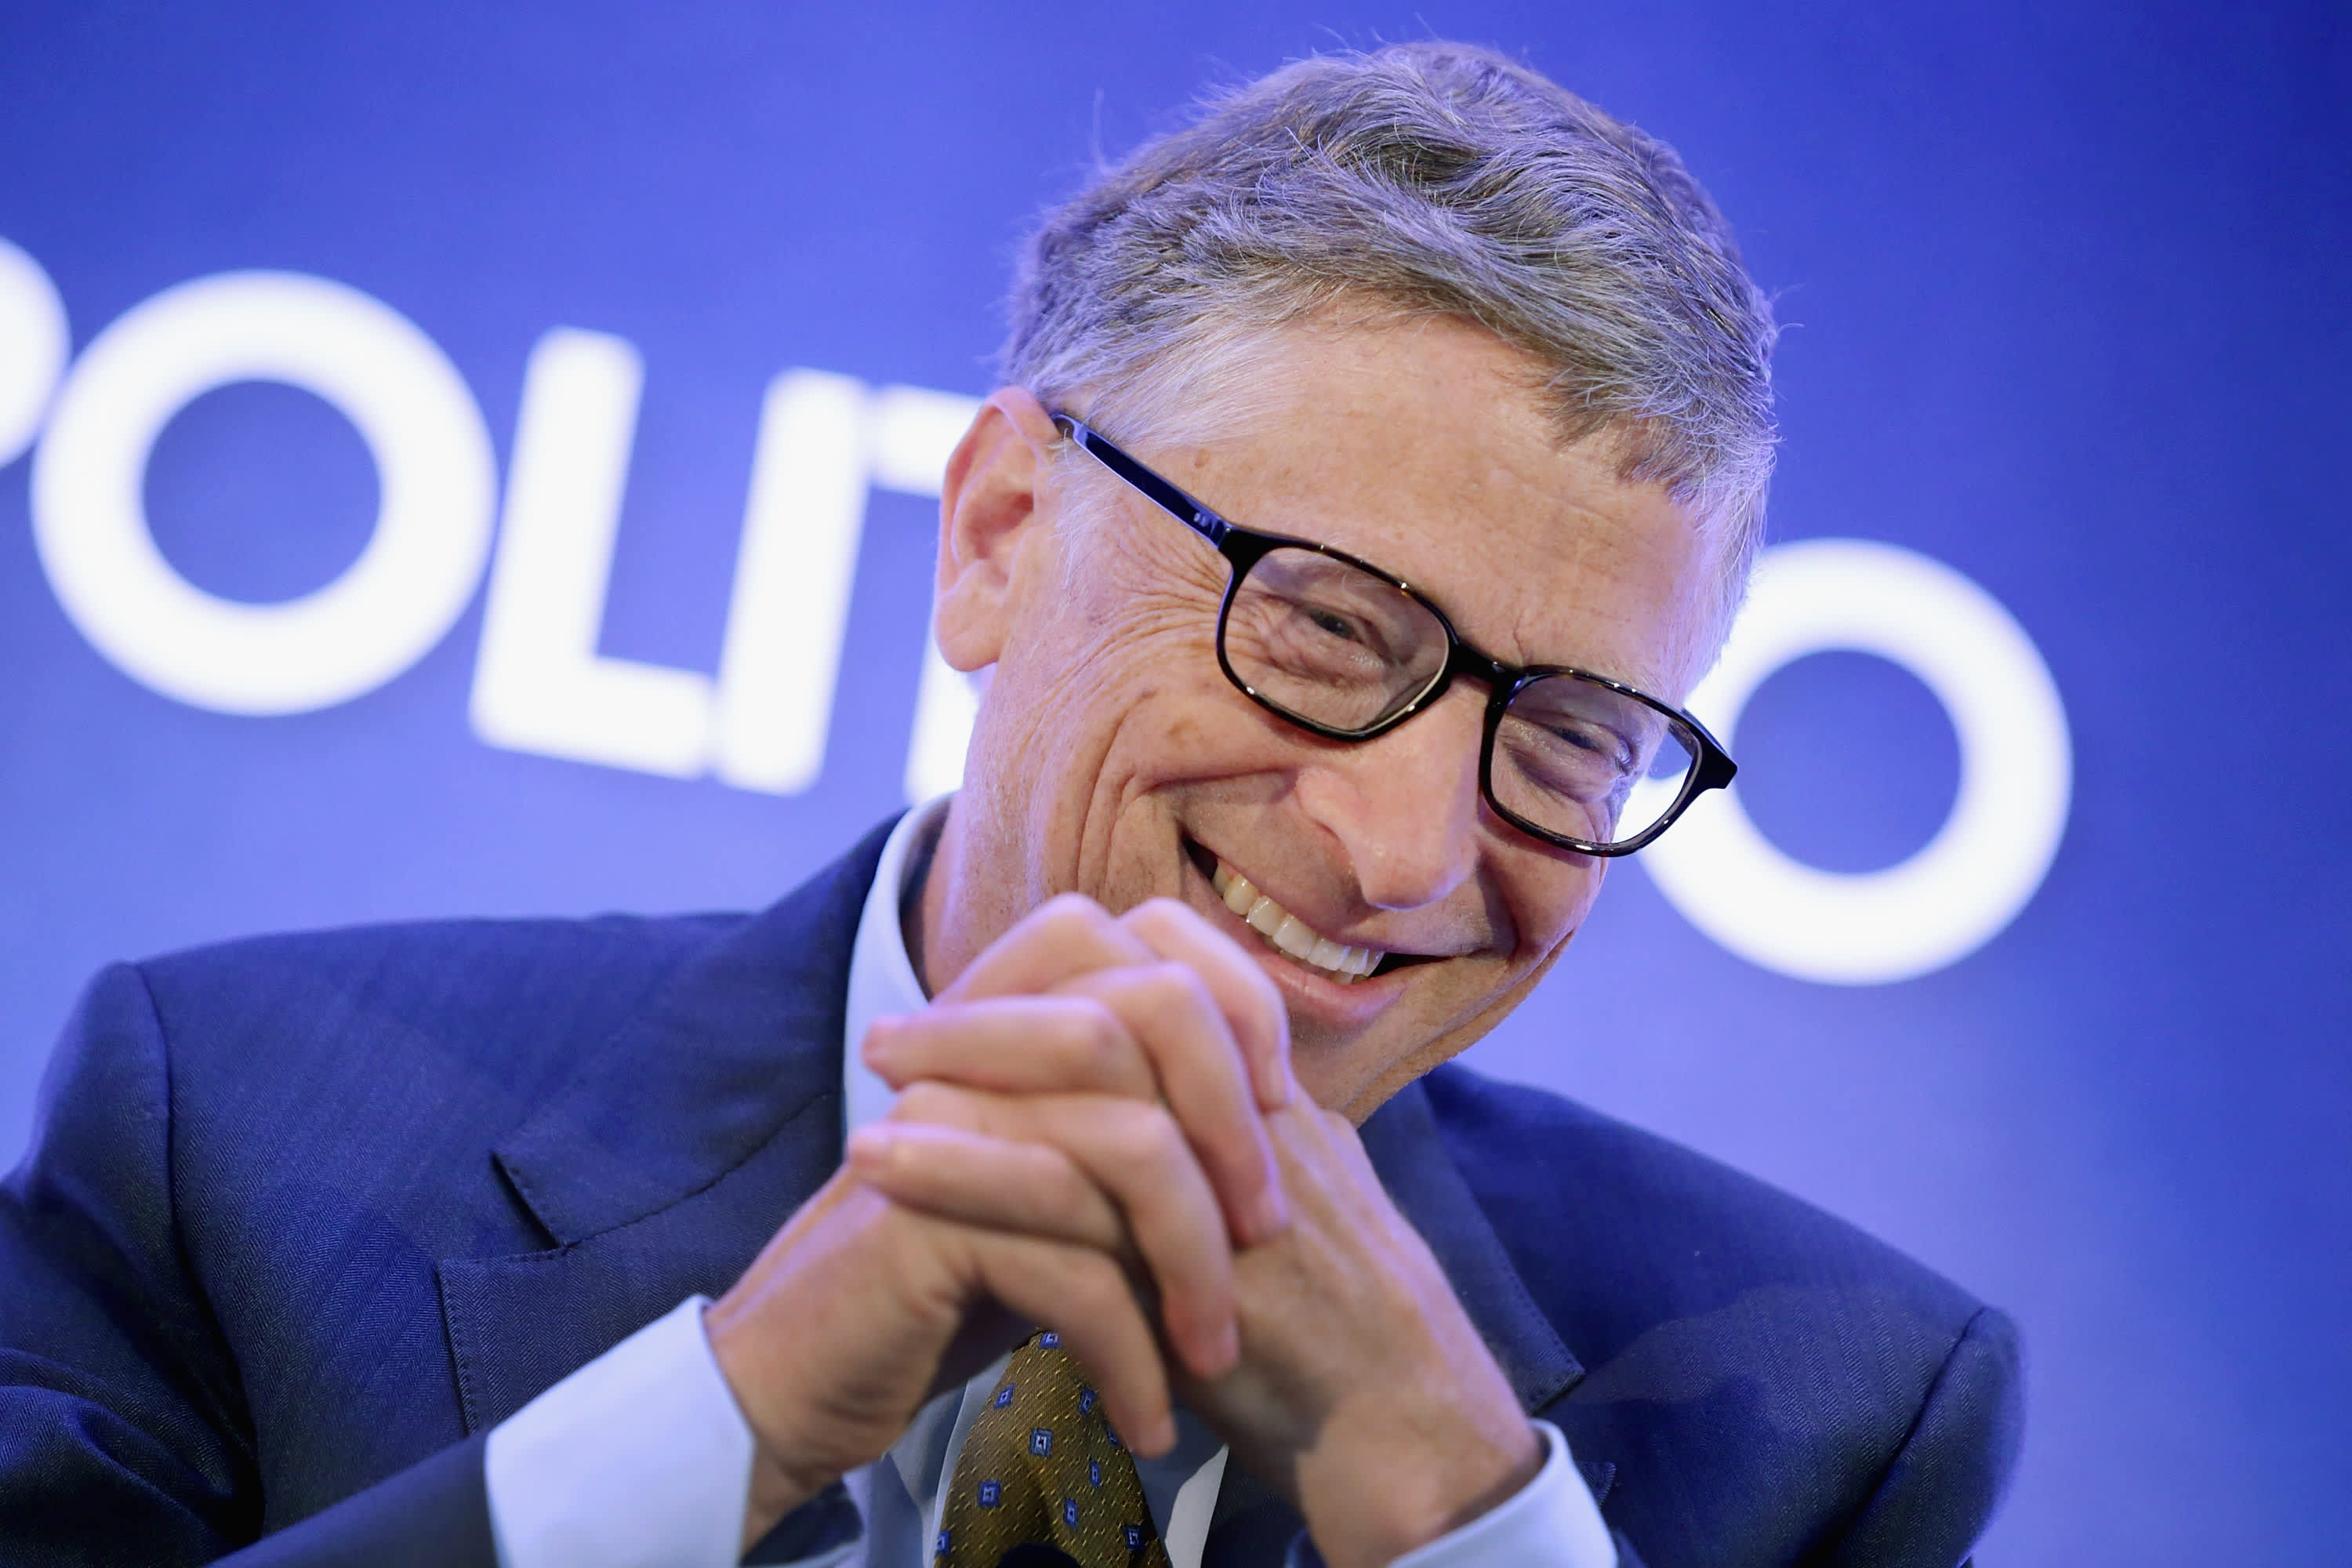 leadership theories of bill gates and oprah winfrey management essay Unforgettable world leaders are those who are firmly imprinted in our minds forever: donald trump, oprah winfrey, richard branson, bill gates, gandhi, and warren buffett they have mastered the.